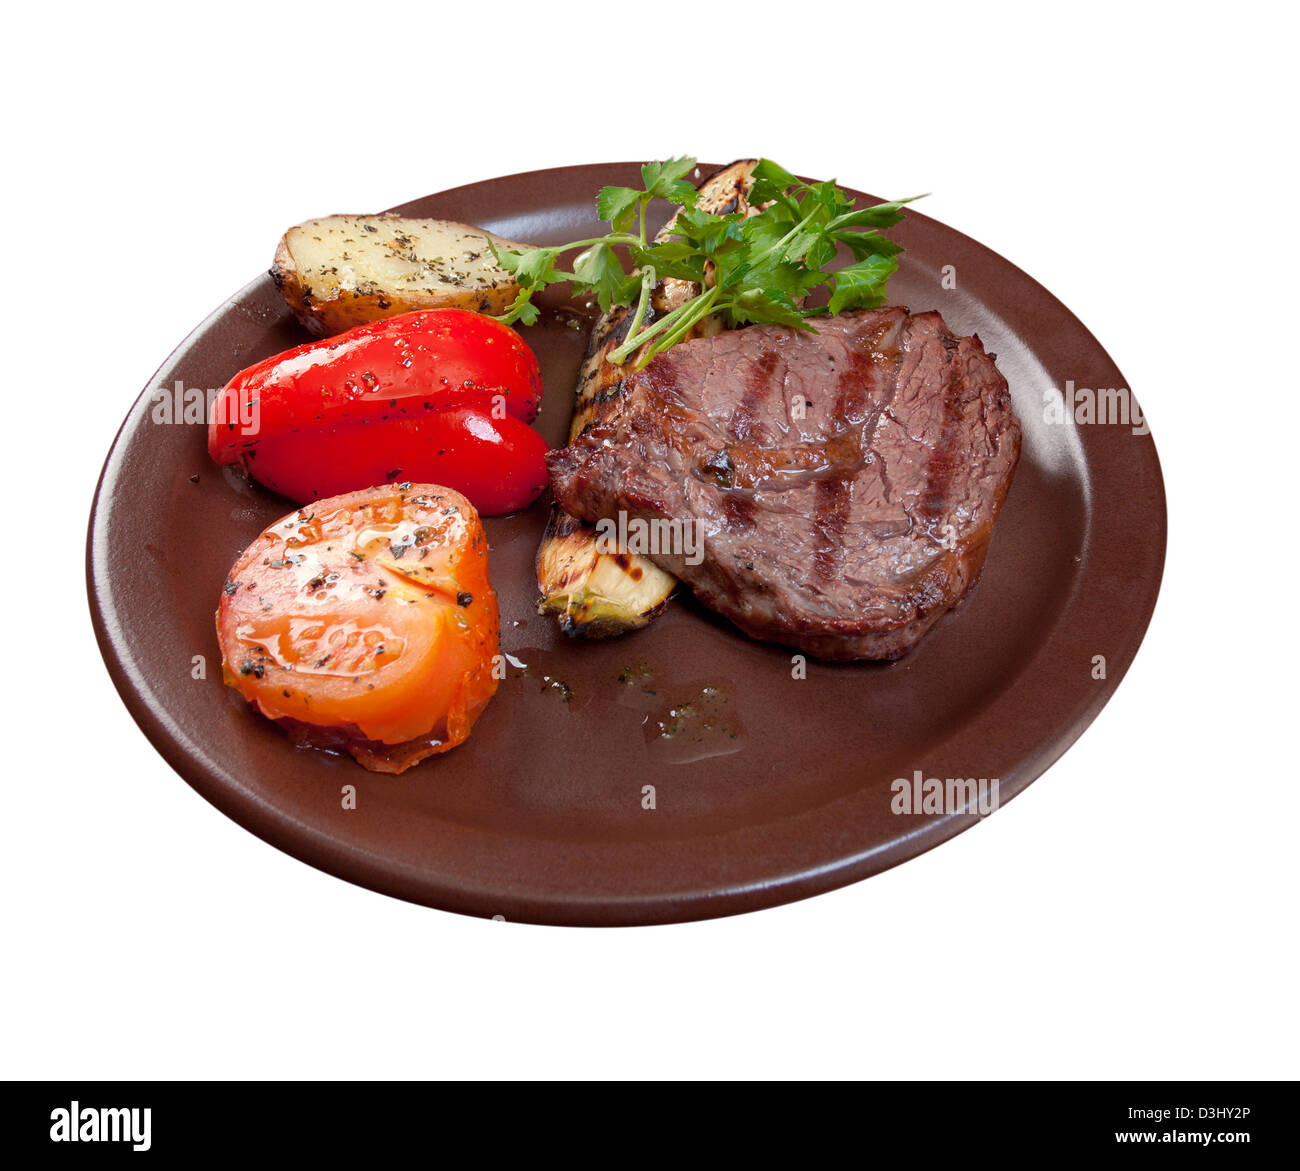 Grilled beef on white plate with vegetable.isolated on white background. - Stock Image